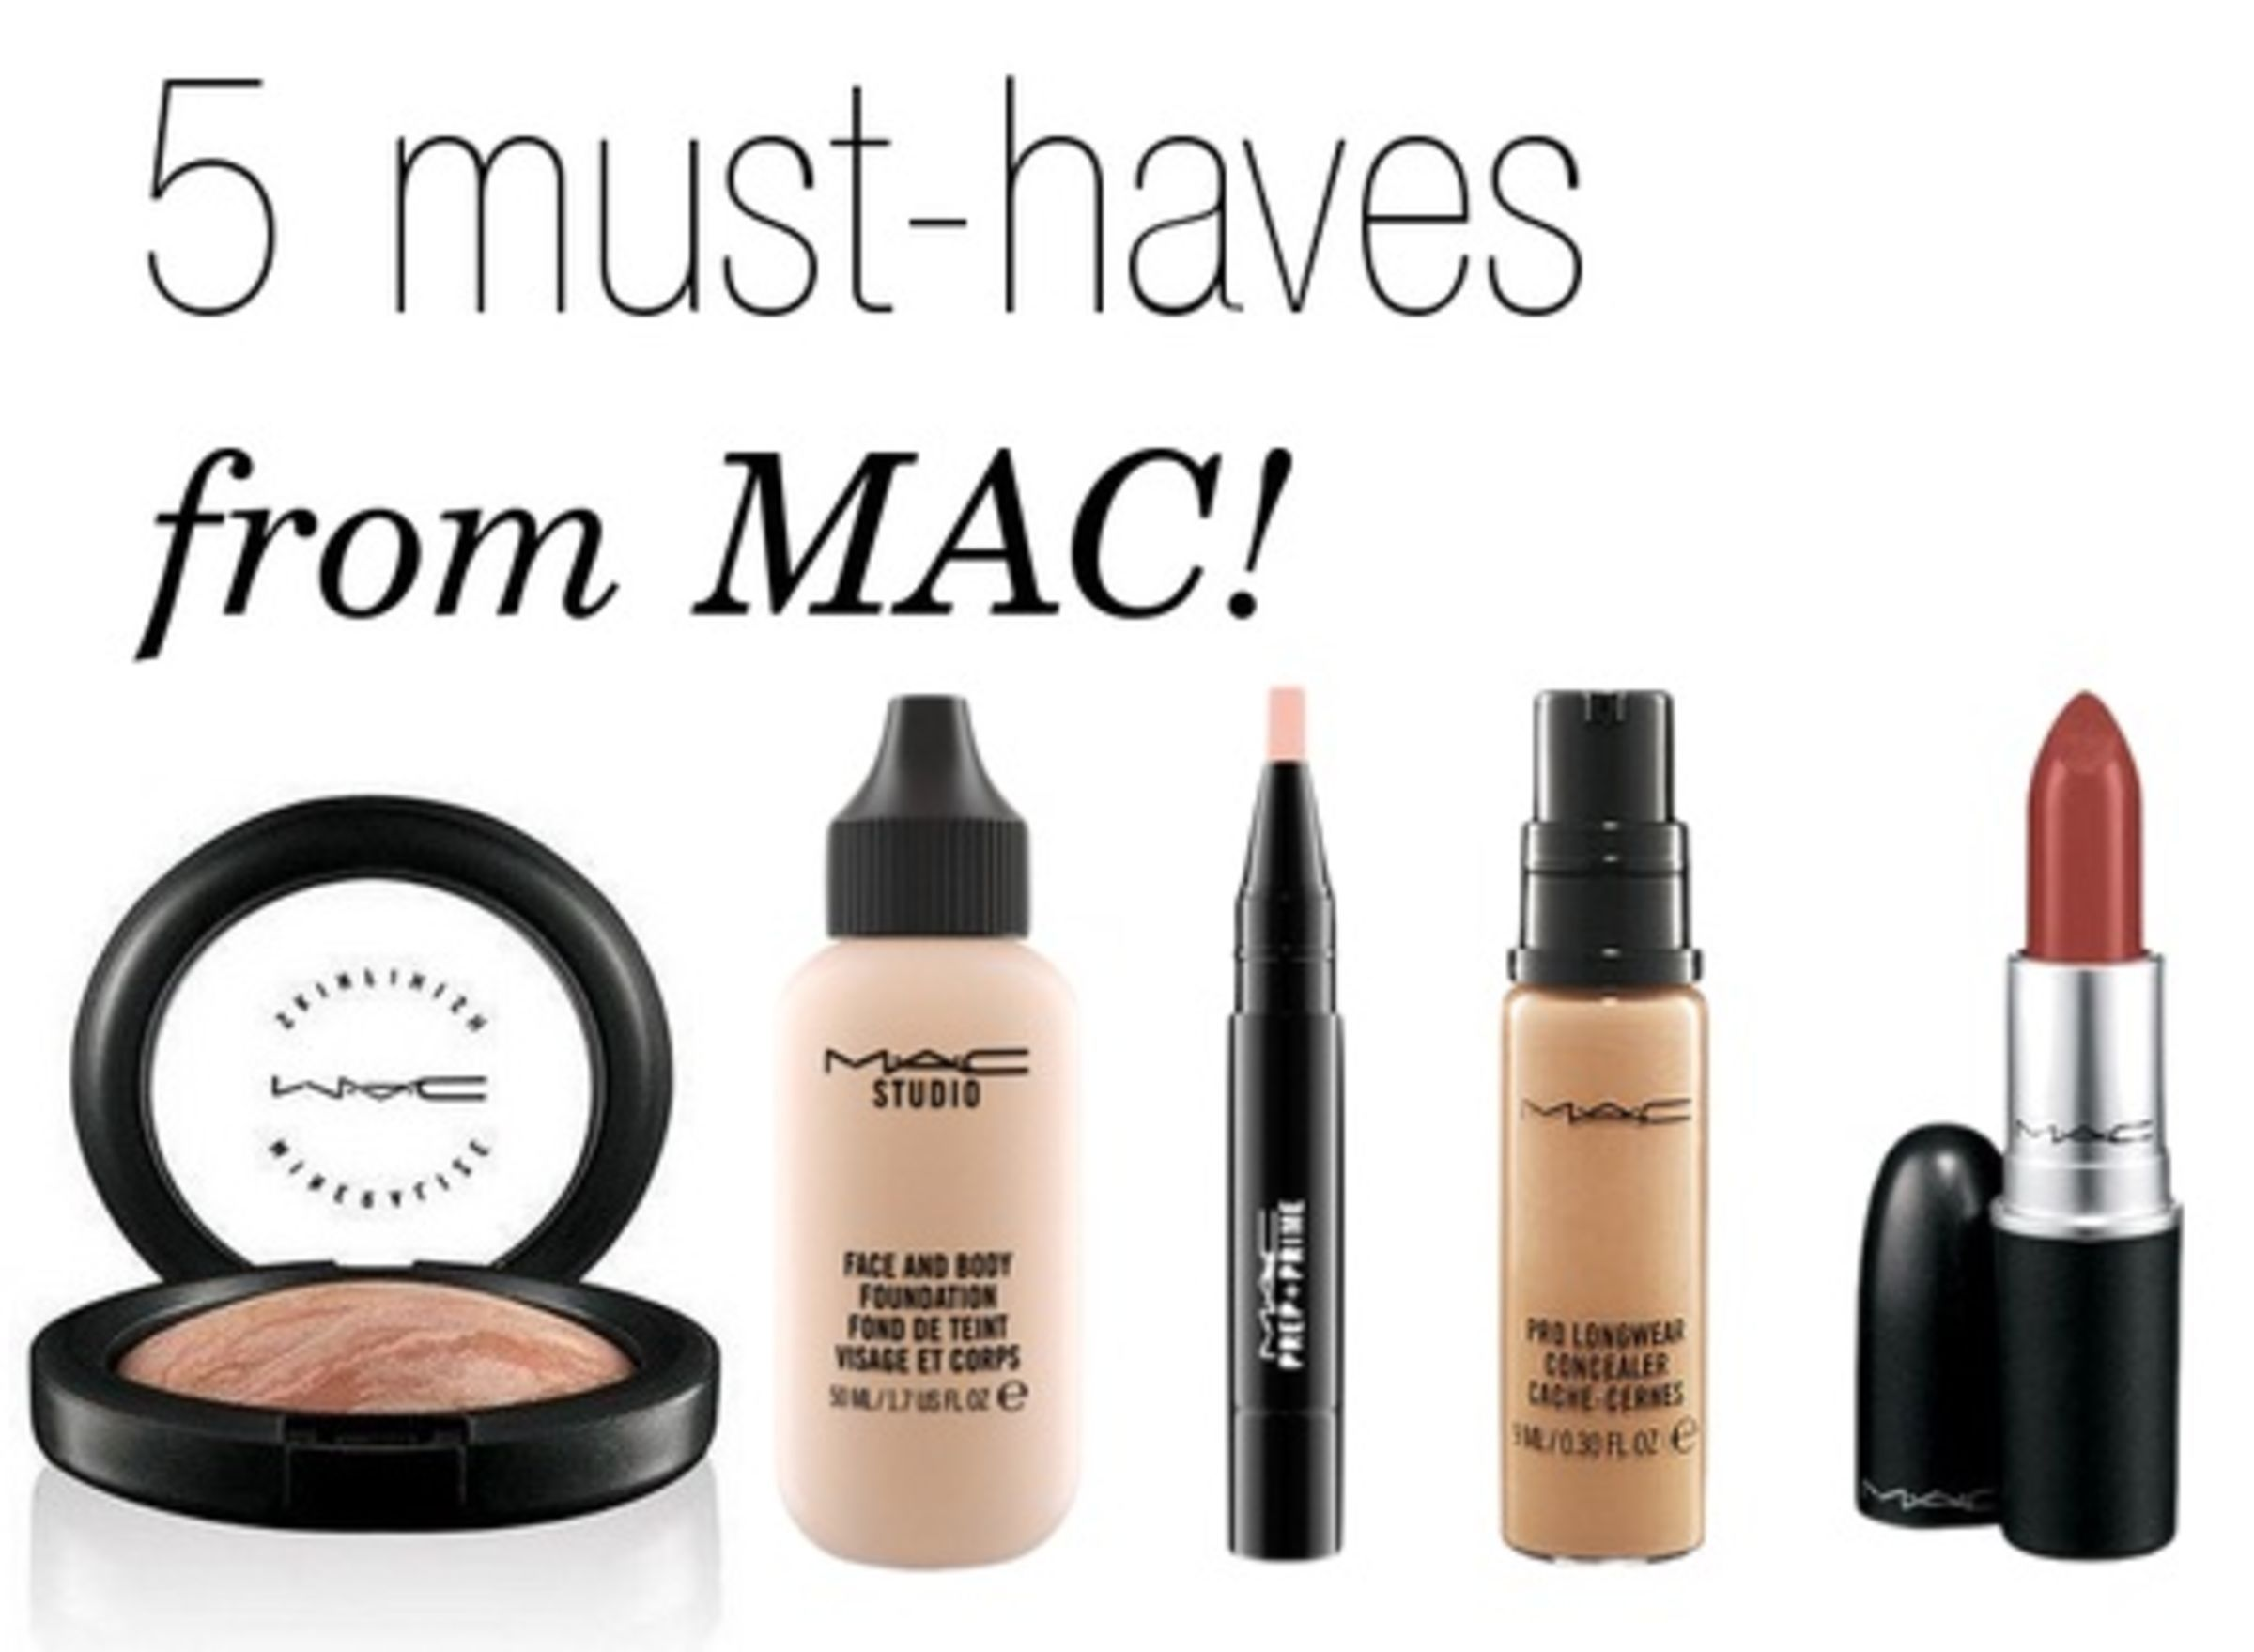 A Beauty Blogger Reviews The Best Mac Products Including Pro Longwear Concealer Mineralize Skinfinish Face And Body Foundation More